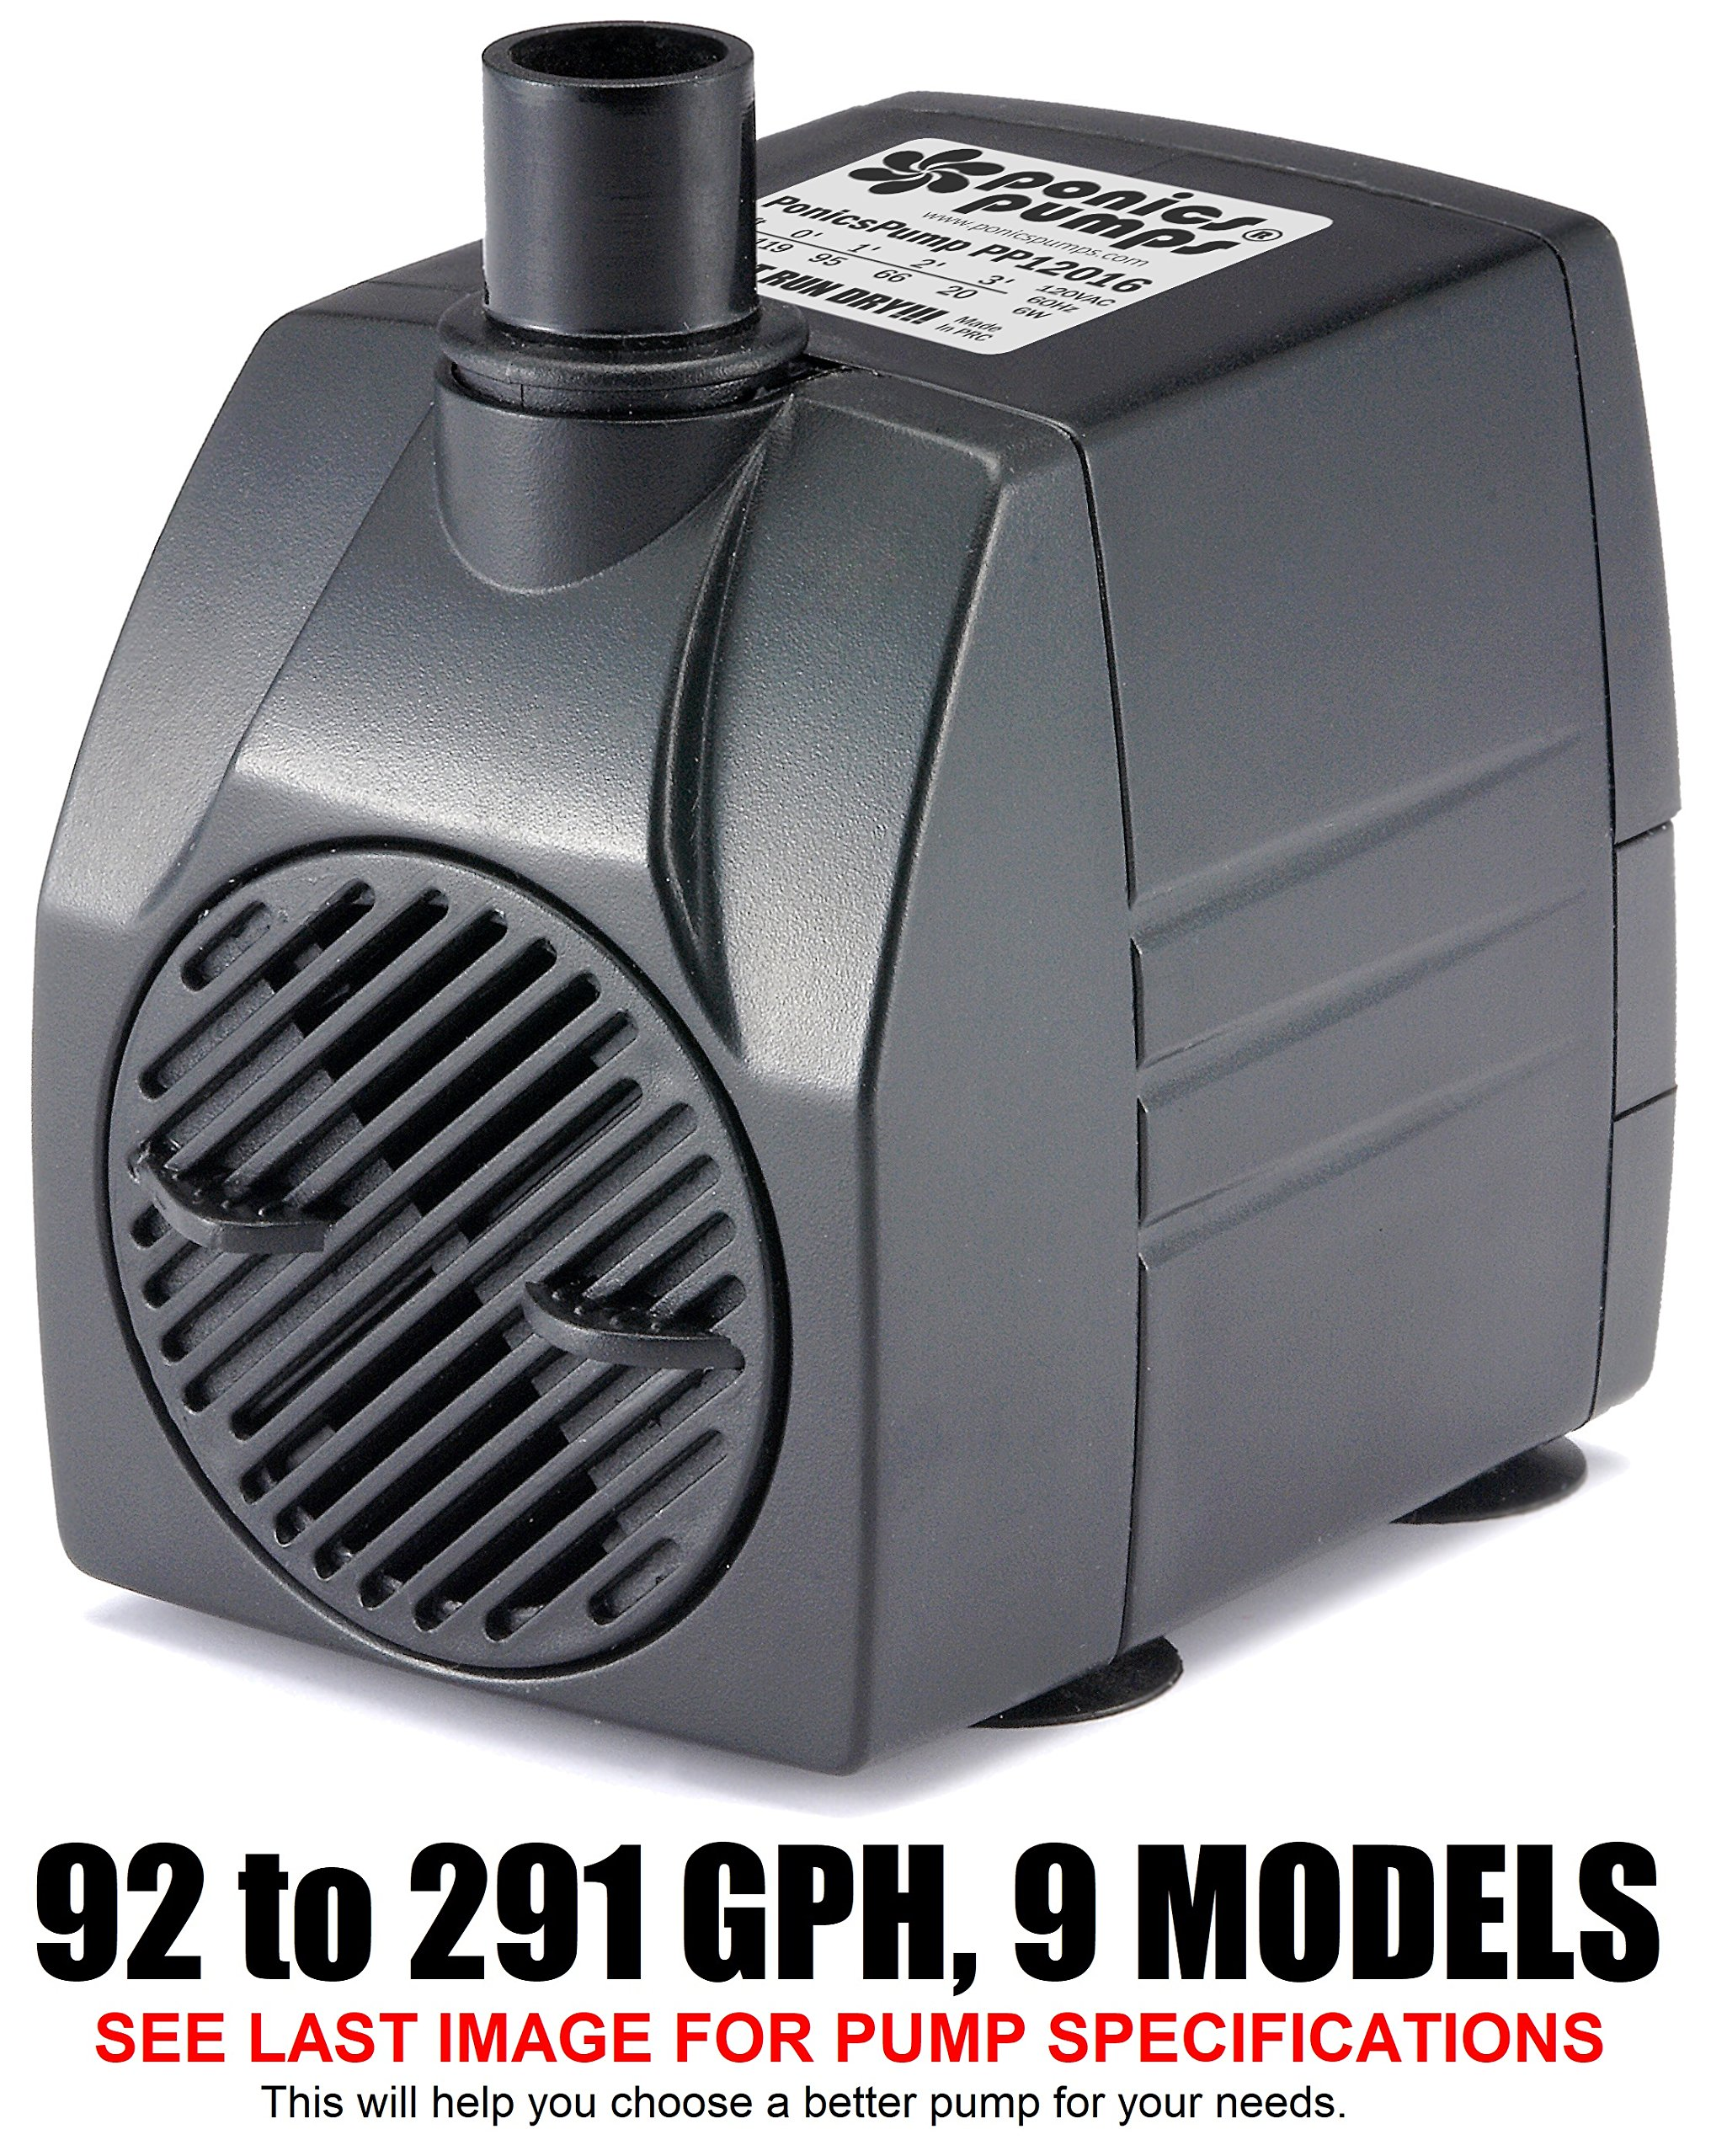 PonicsPump PP12016: 120 GPH Submersible Pump with 16' Cord - 6W… for Fountains, Statuary, Aquariums & more. Comes with 1 year limited warranty. by PonicsPump